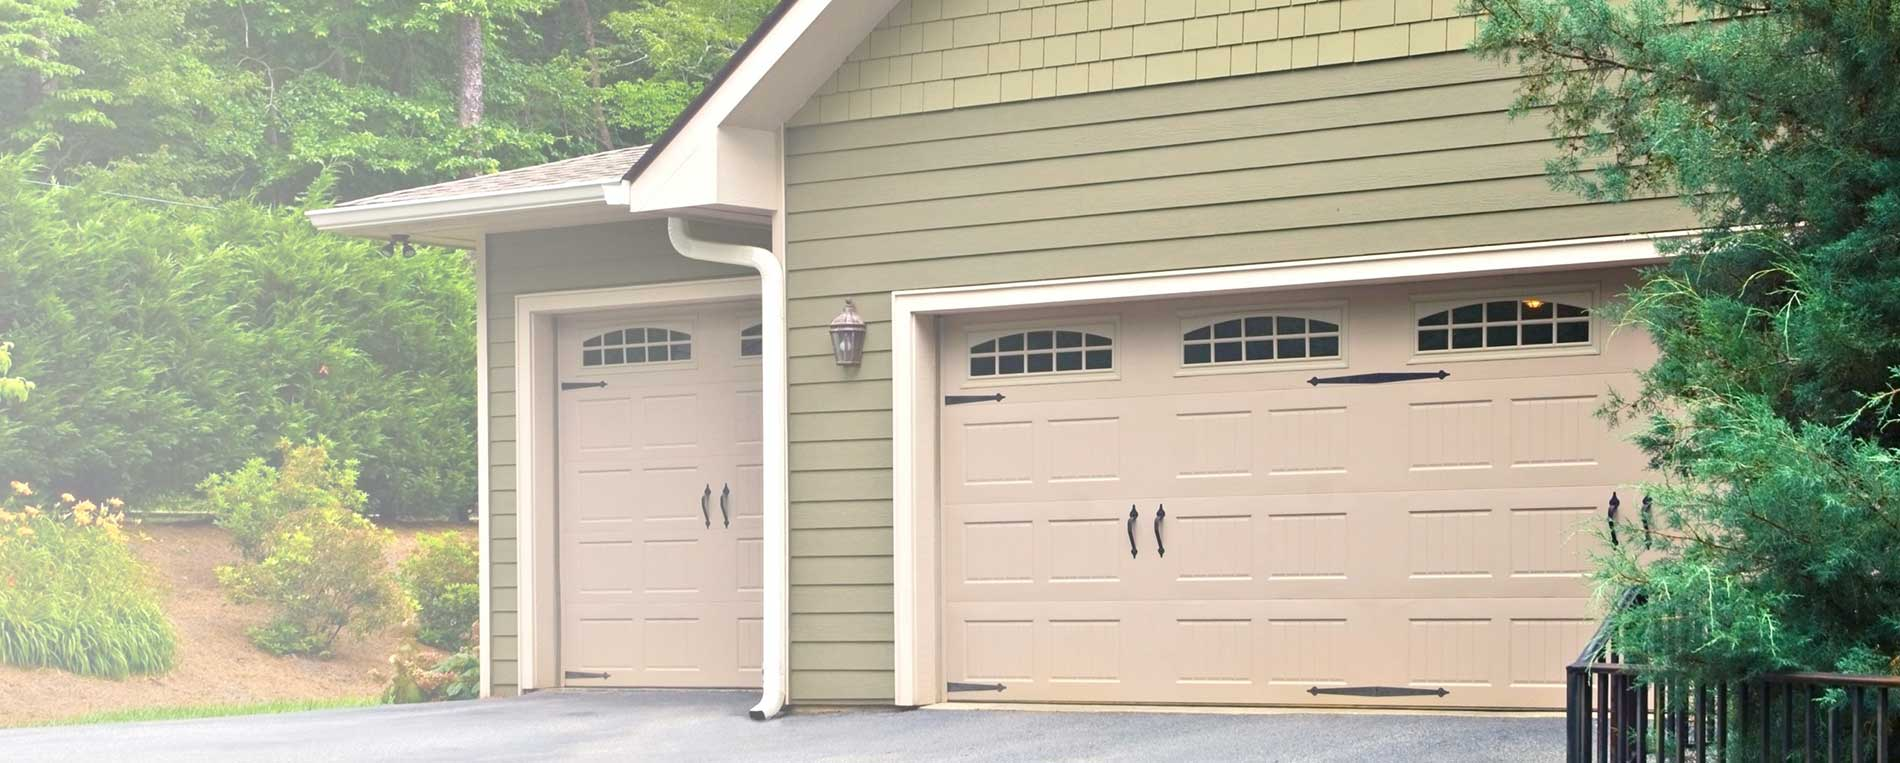 Garage Door Repair Minneola, FL